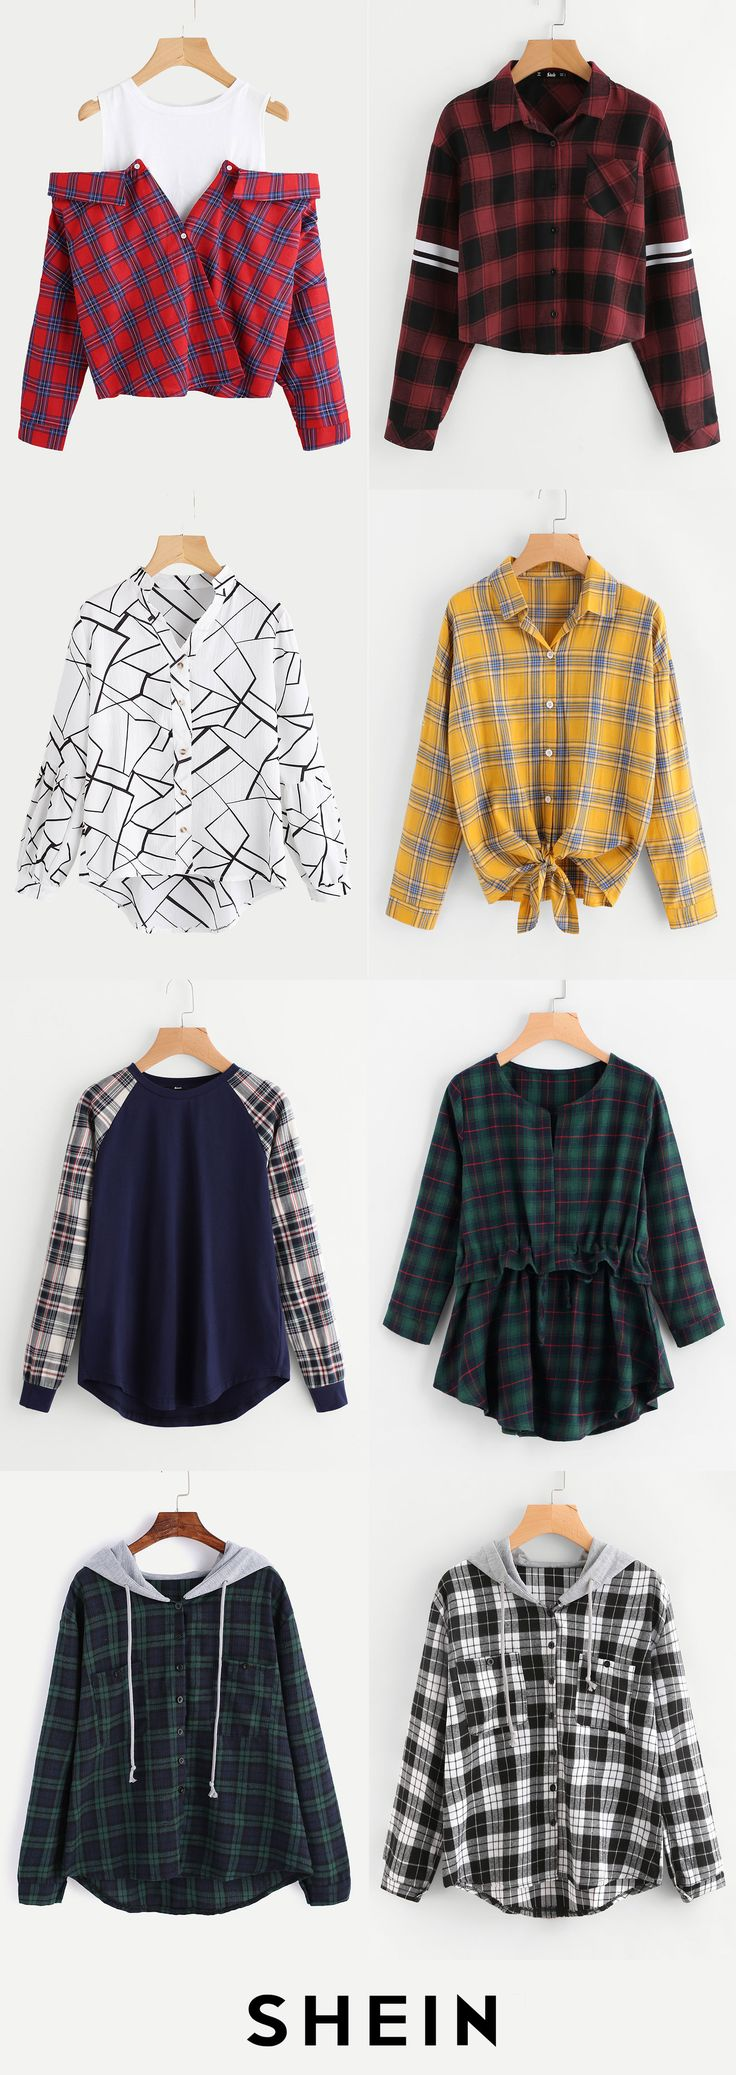 Plaid never goes out of style!